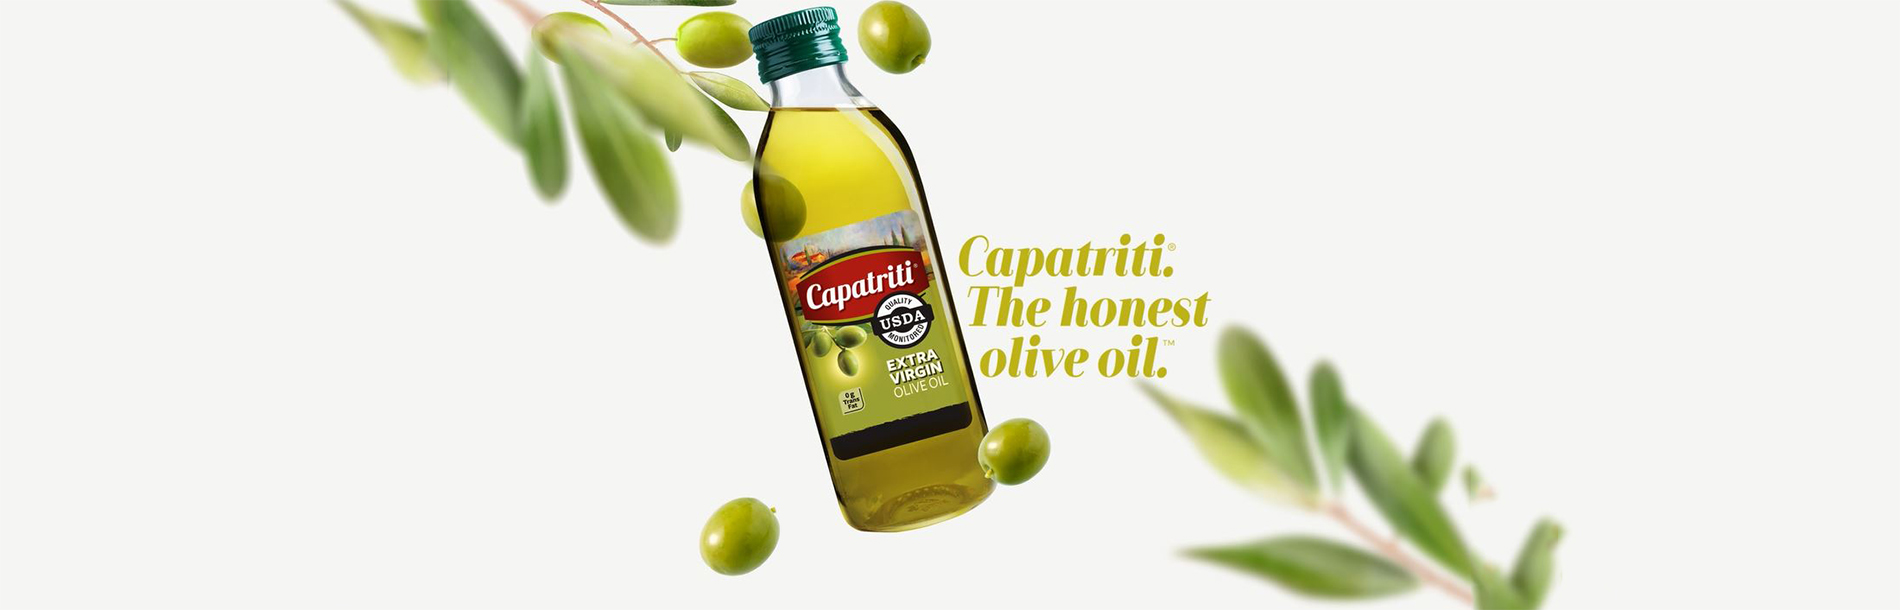 capatritioliveoil-1494883455557-null-HR.jpg